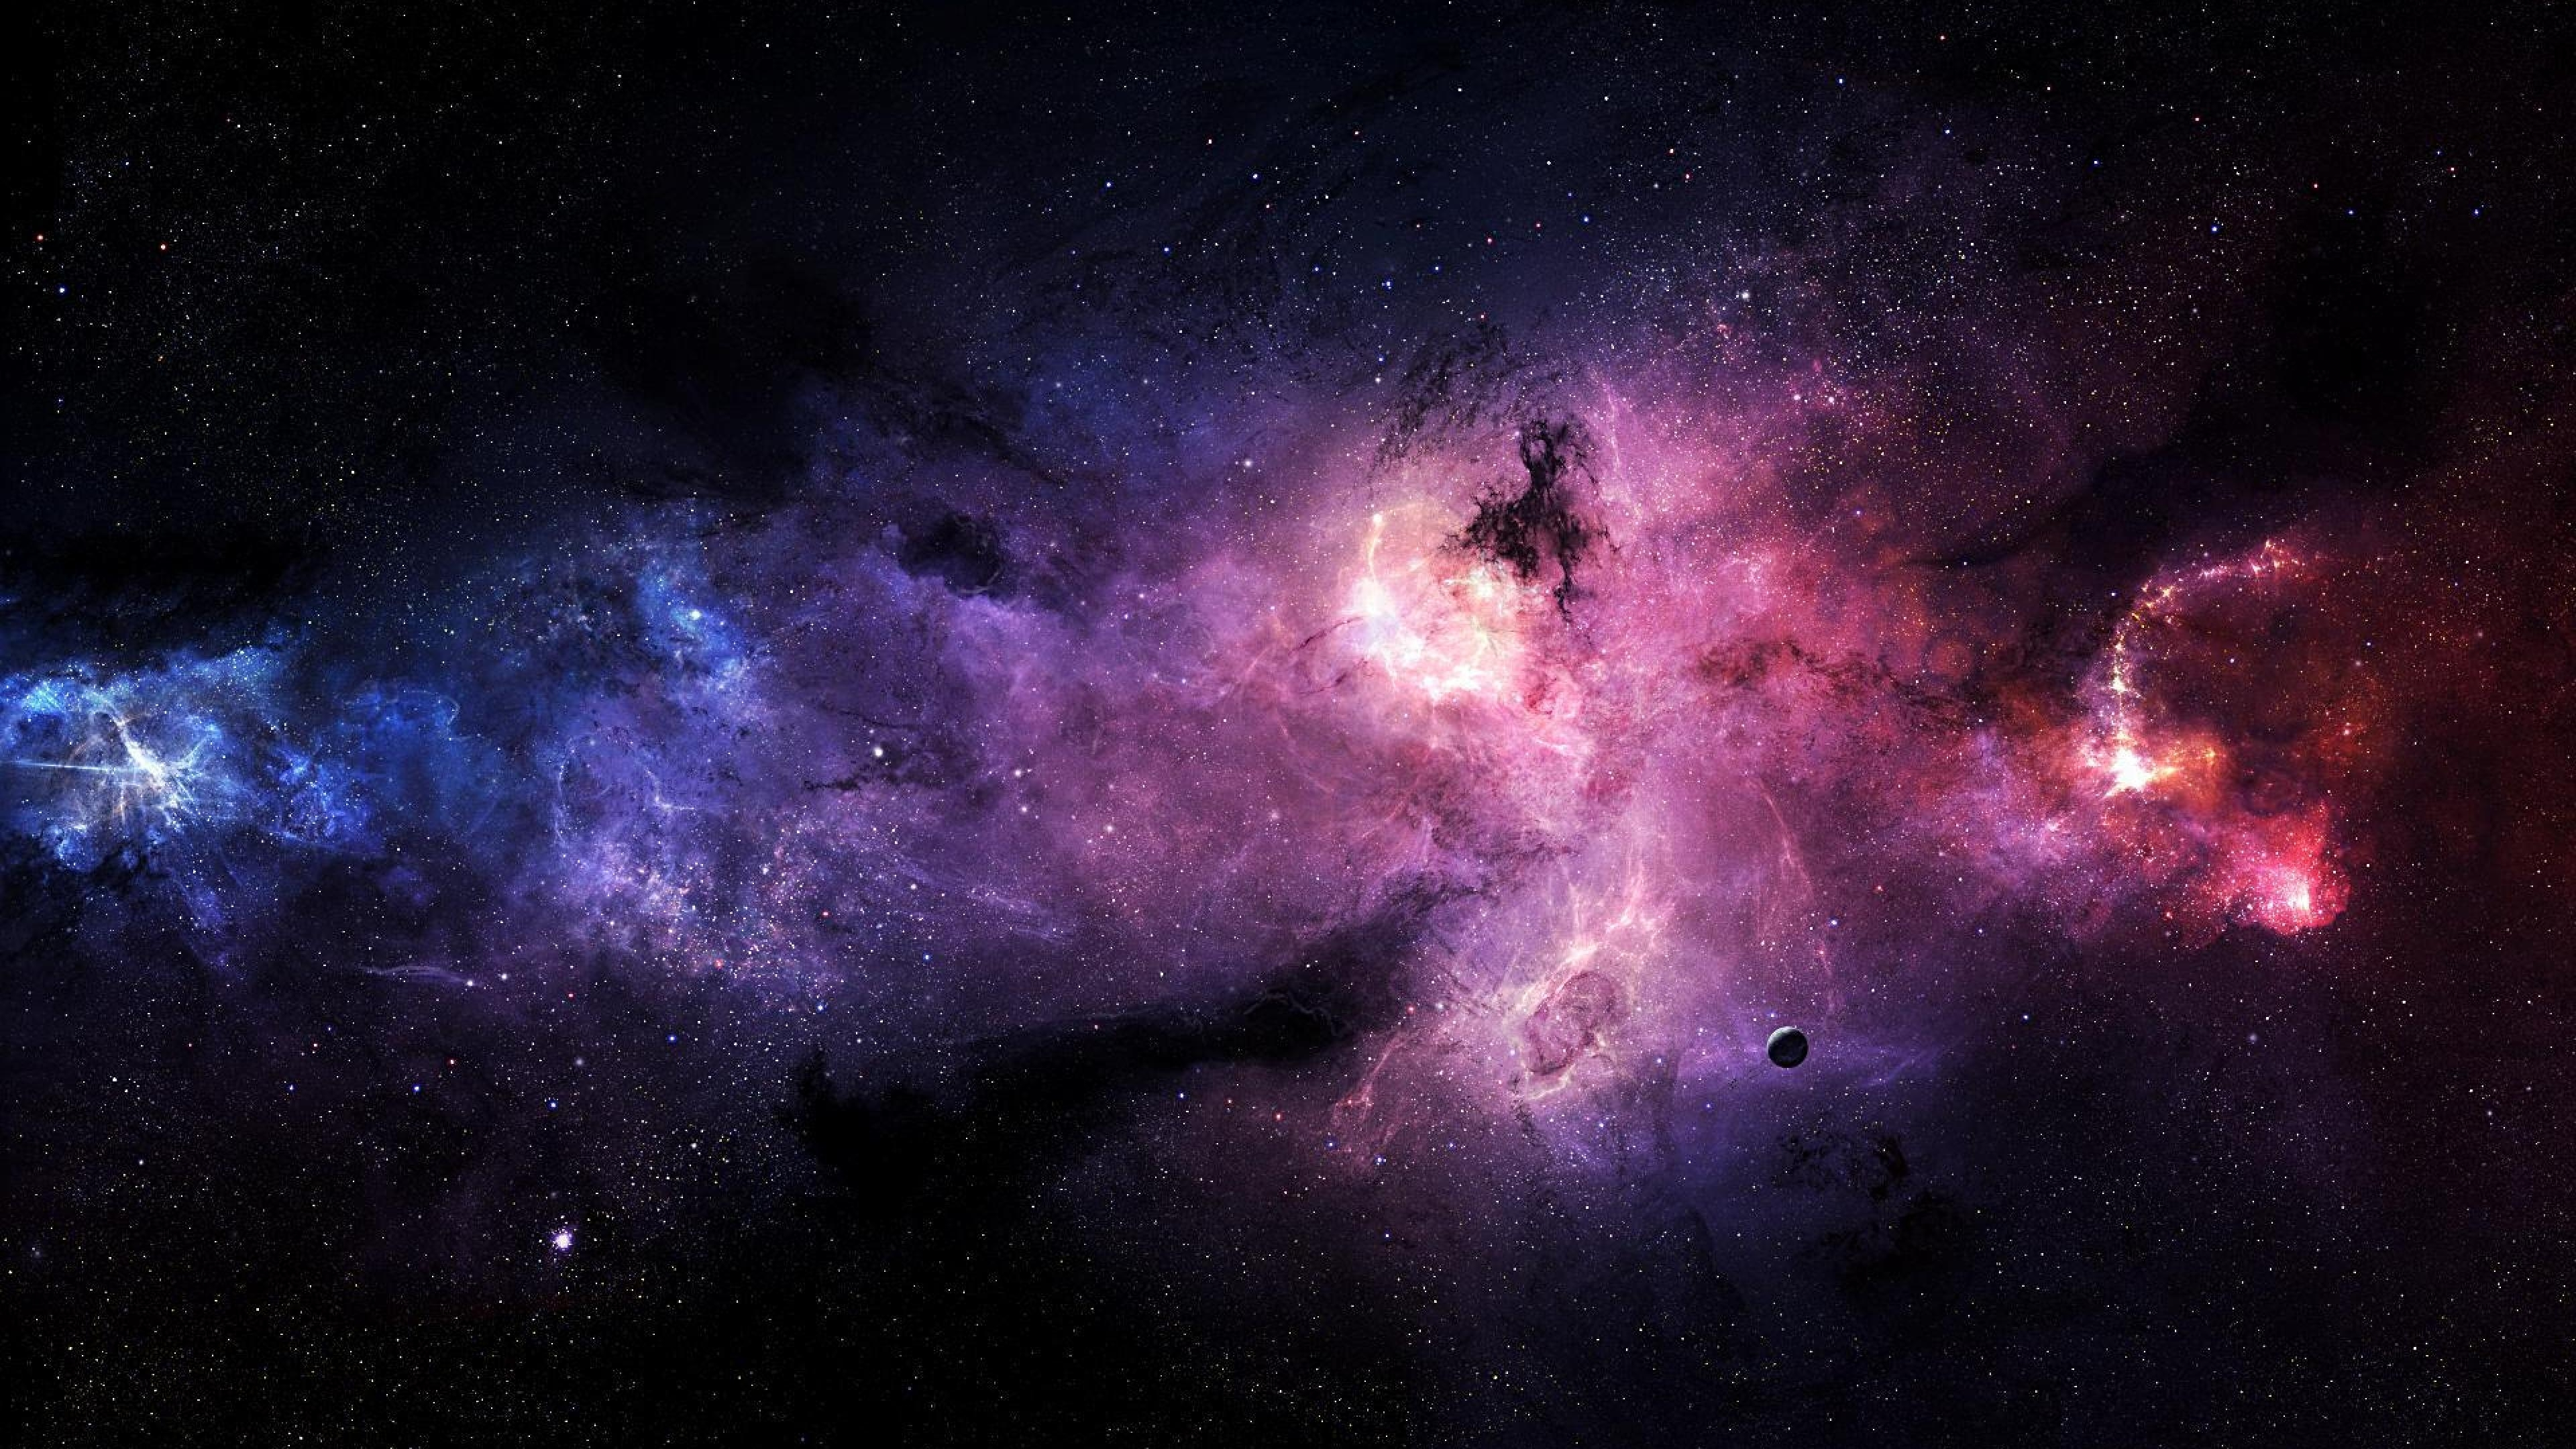 10 Top Hd Real Space Wallpapers 1080p Full Hd 1920 1080 For Pc